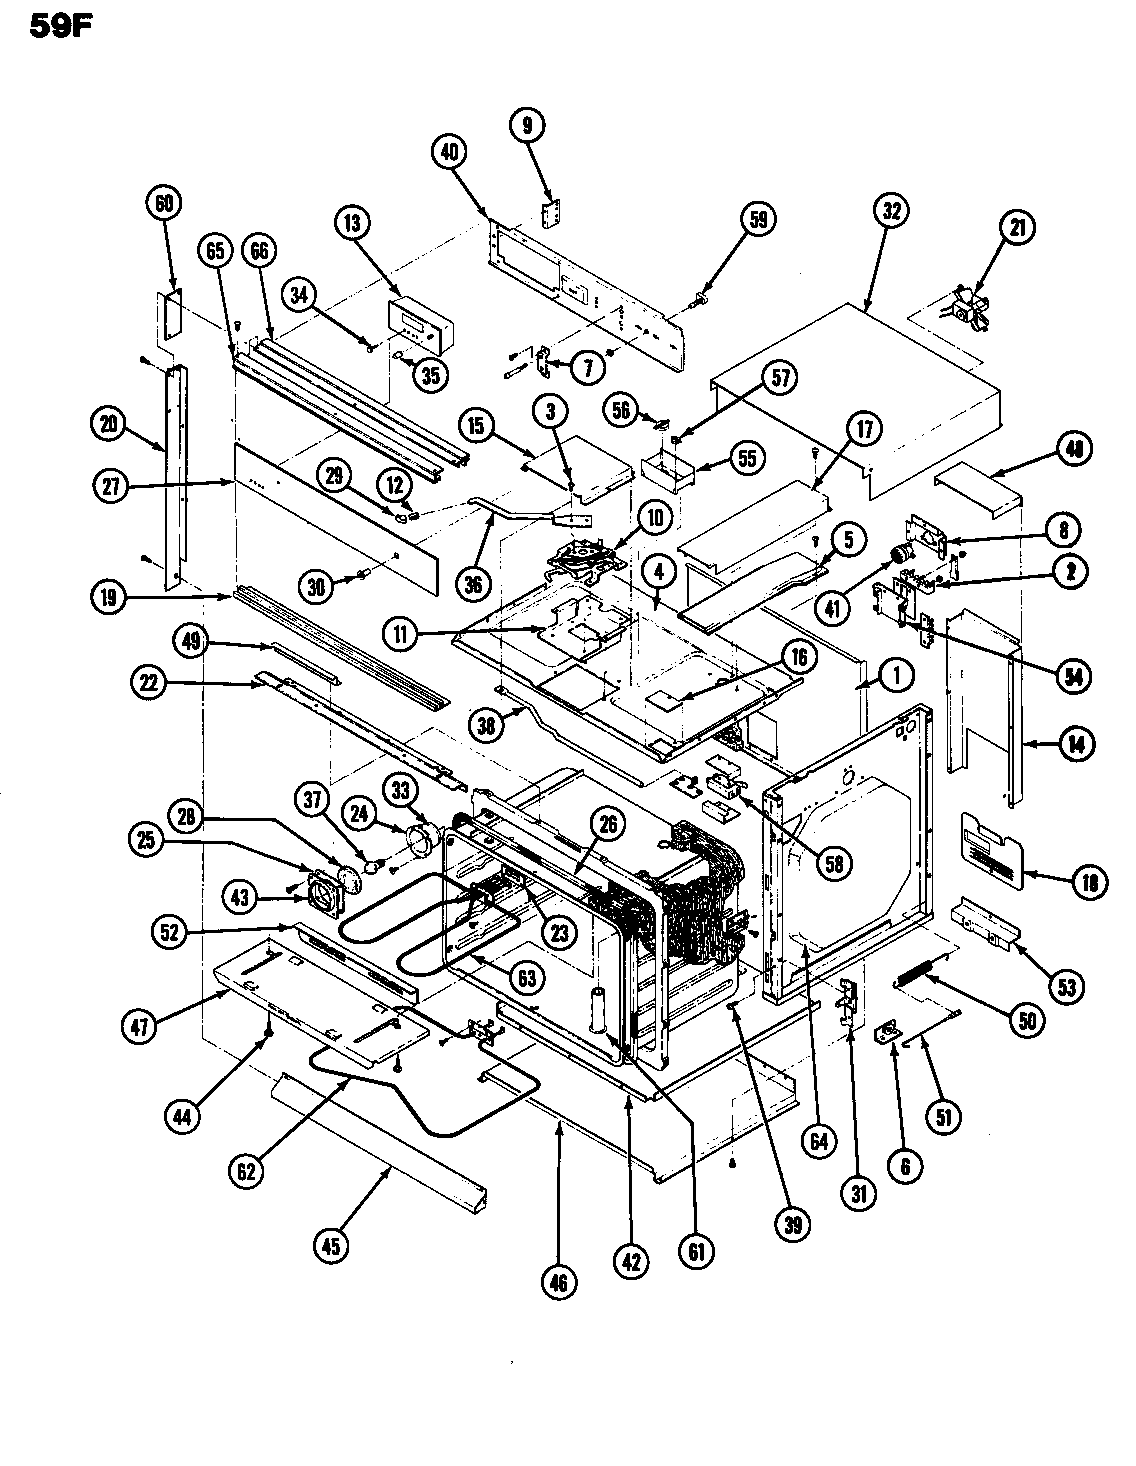 hight resolution of magic chef 59fn 5tvw body diagram